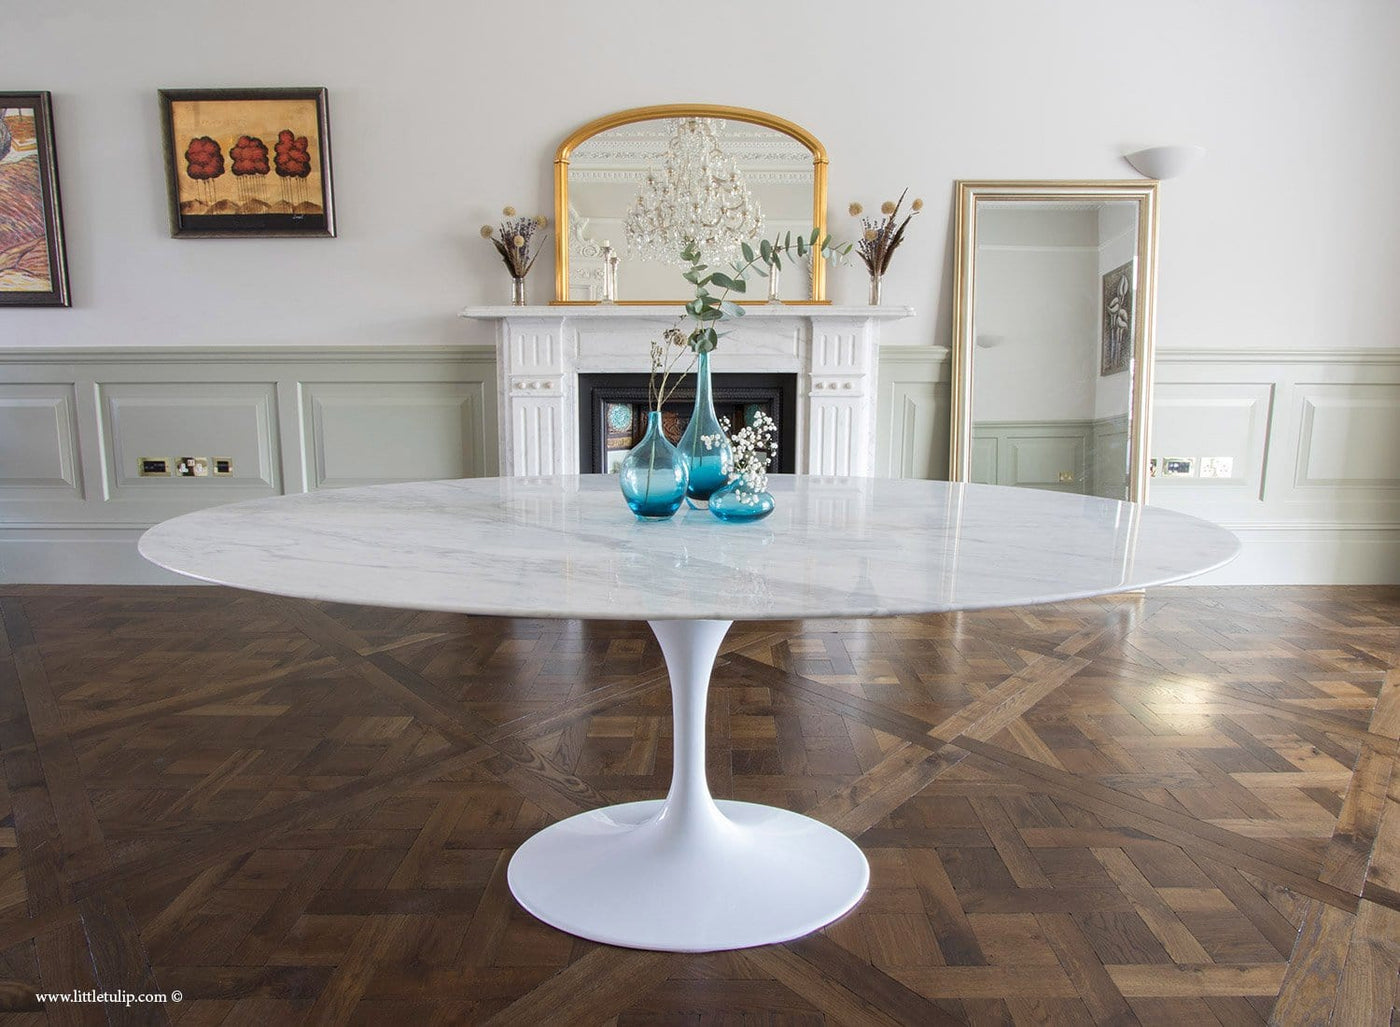 200cm x 120cm Oval White Carrara Marble Tulip Table by Eero Saarinen The Little Tulip Shop